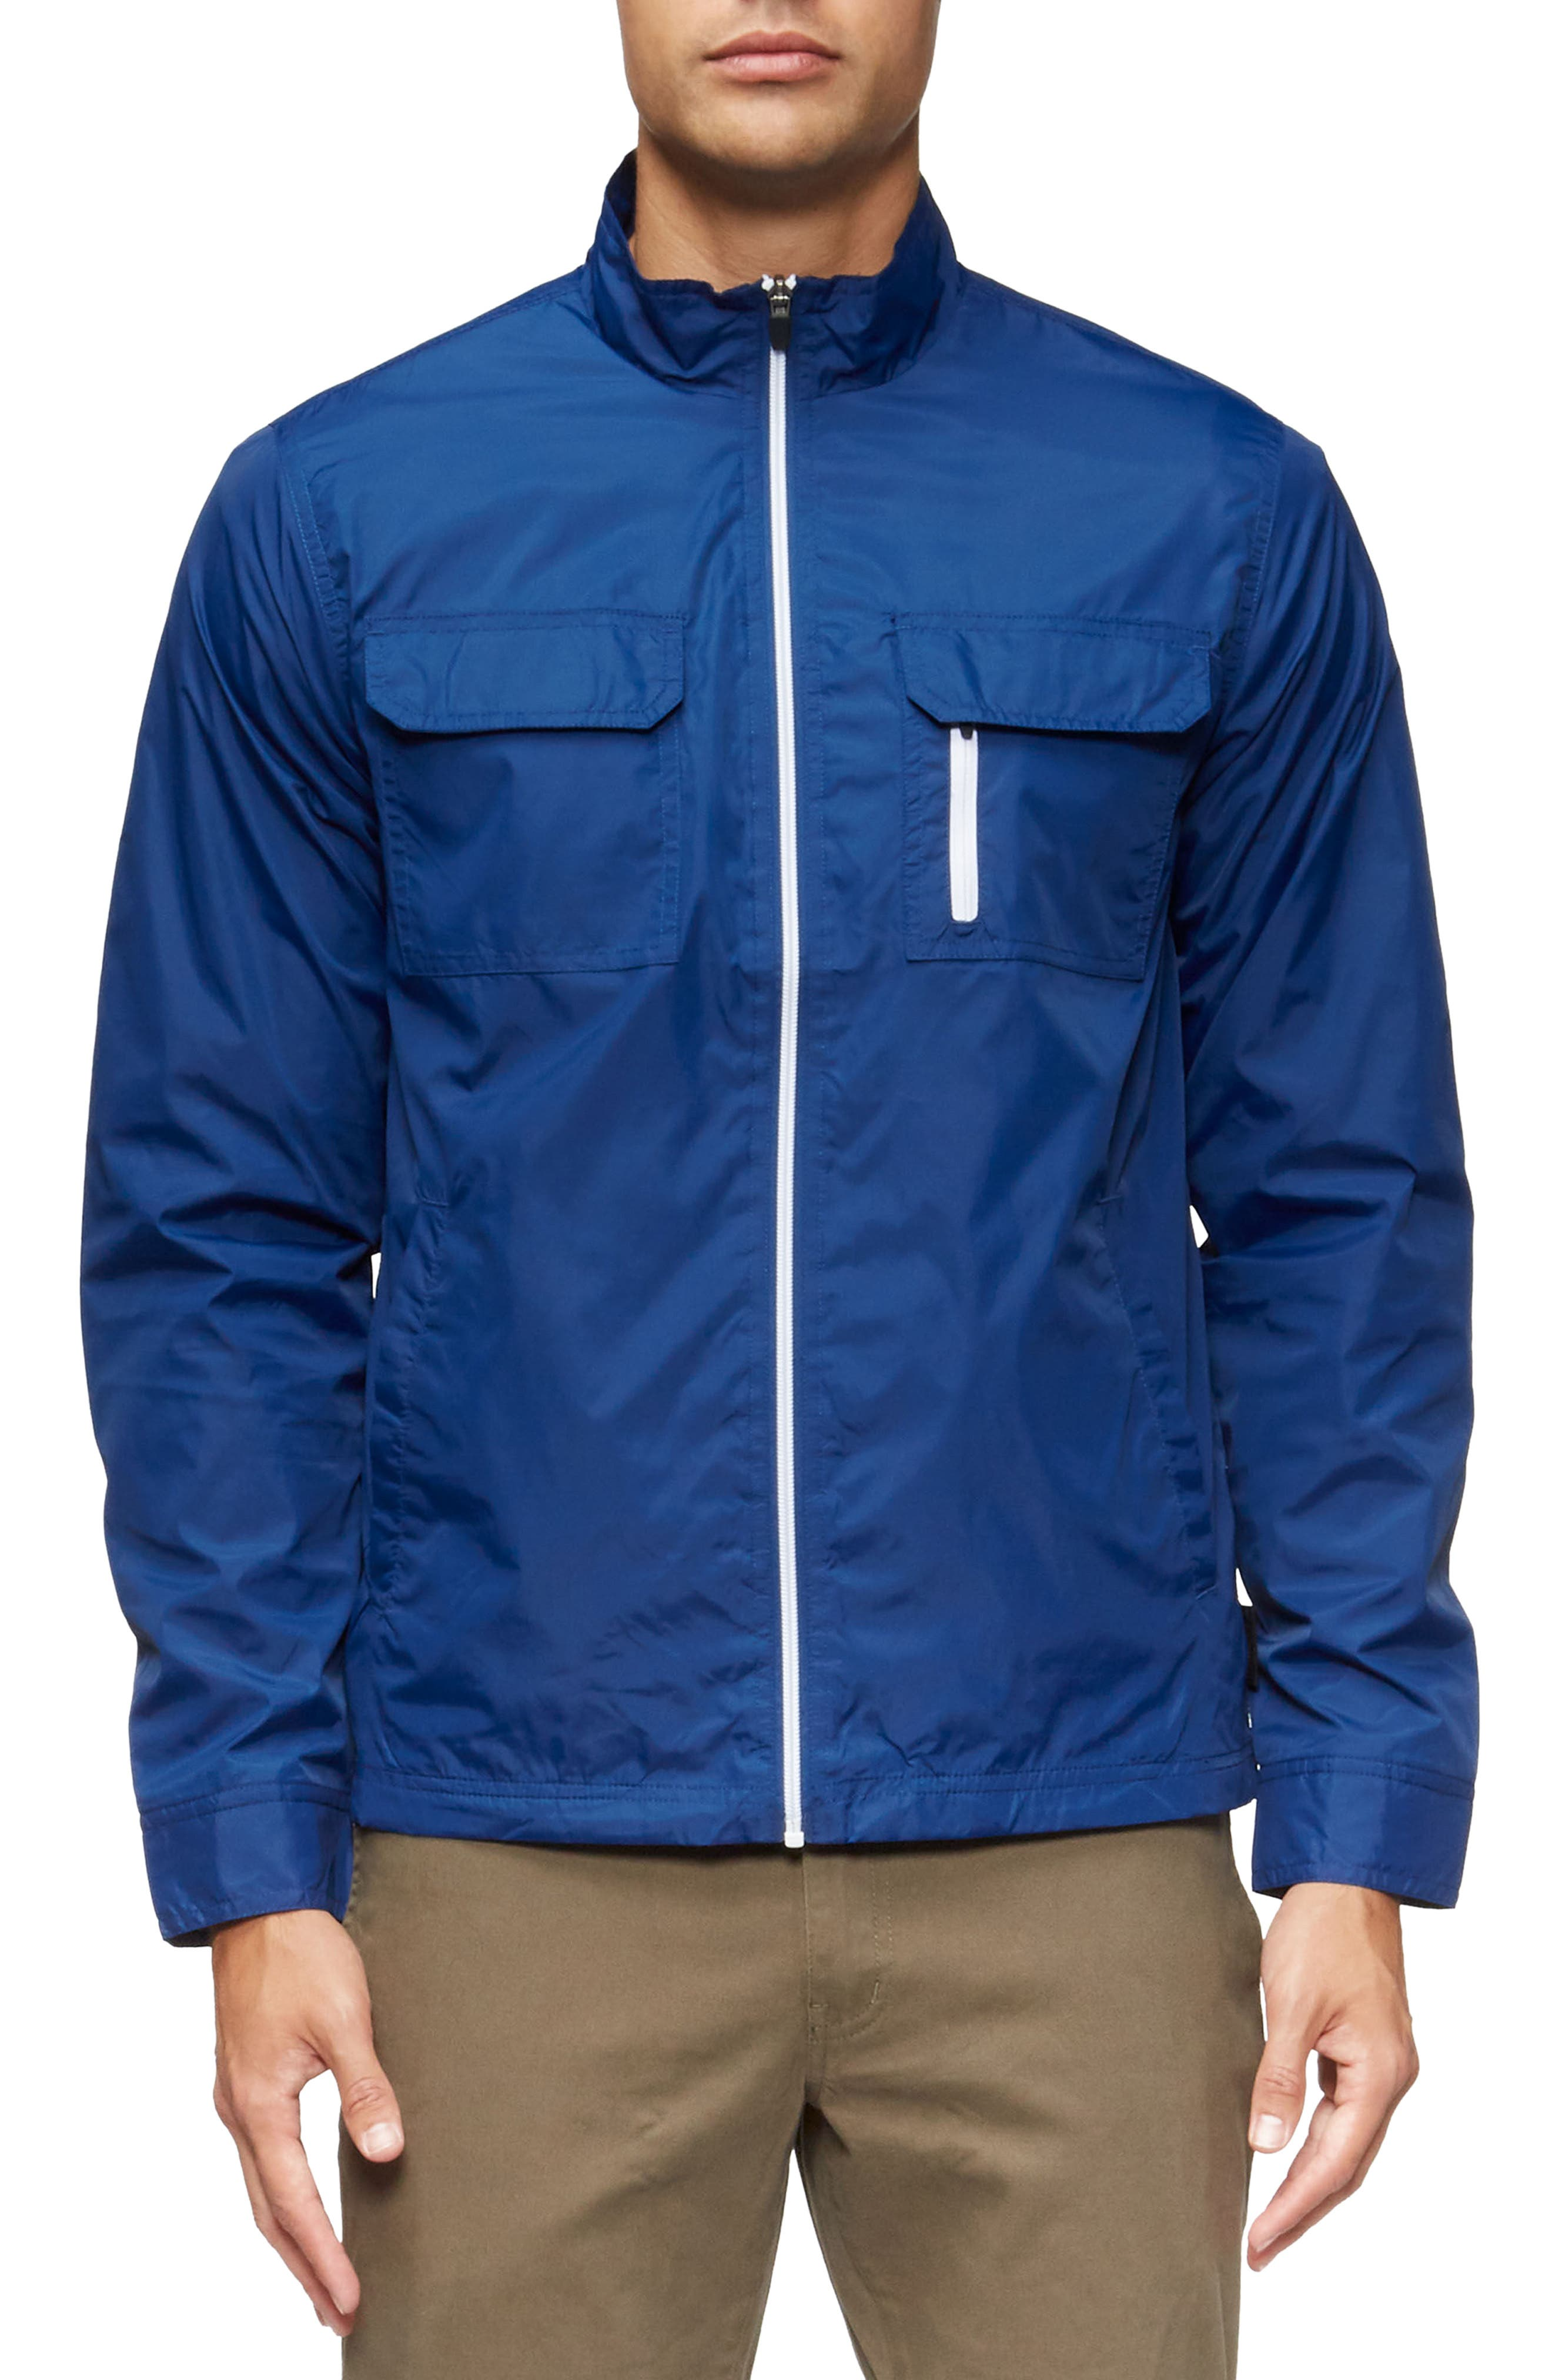 Staple Jacket,                         Main,                         color, Ink Blue